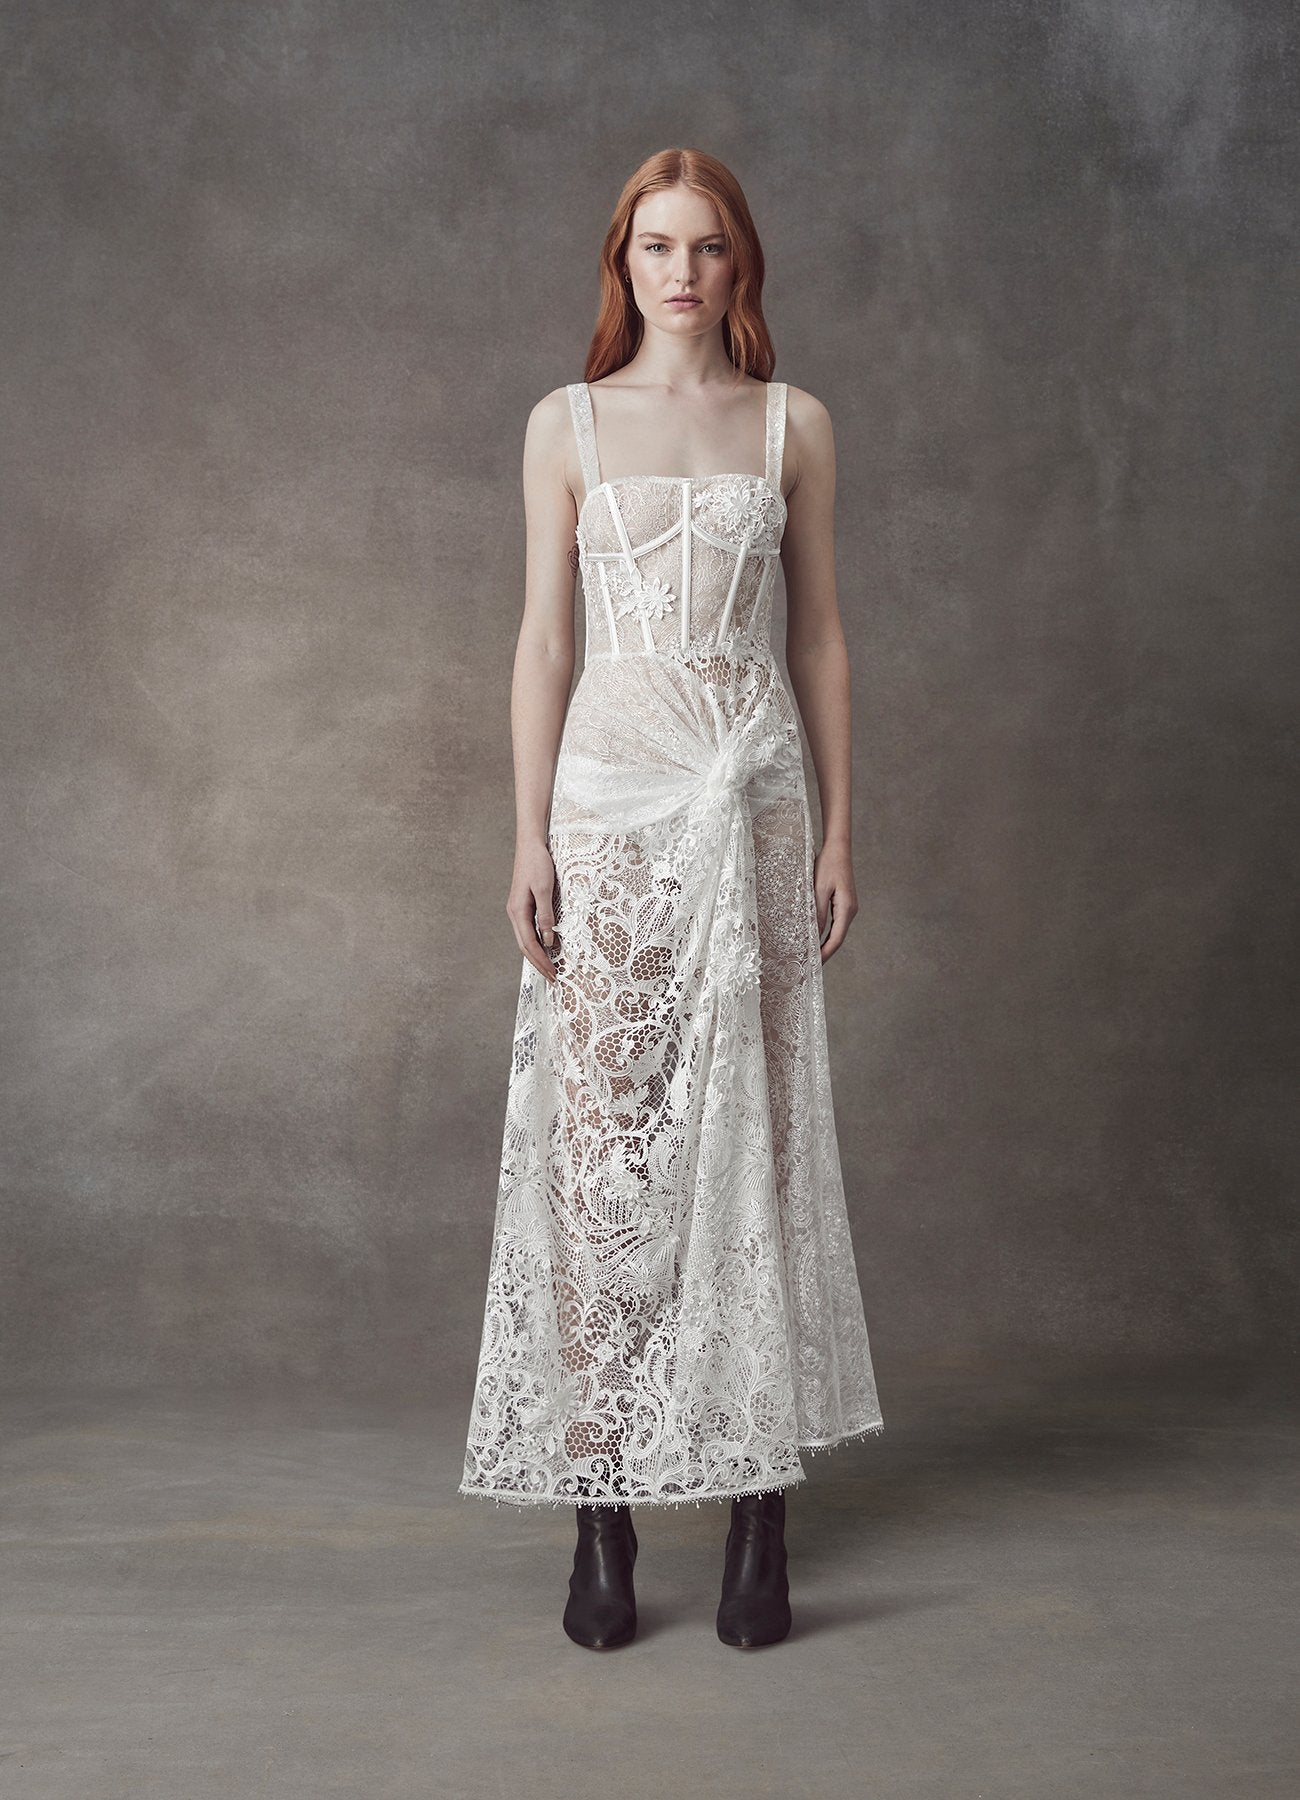 Juno Drape Knotted Lace Dress - LEO & LIN